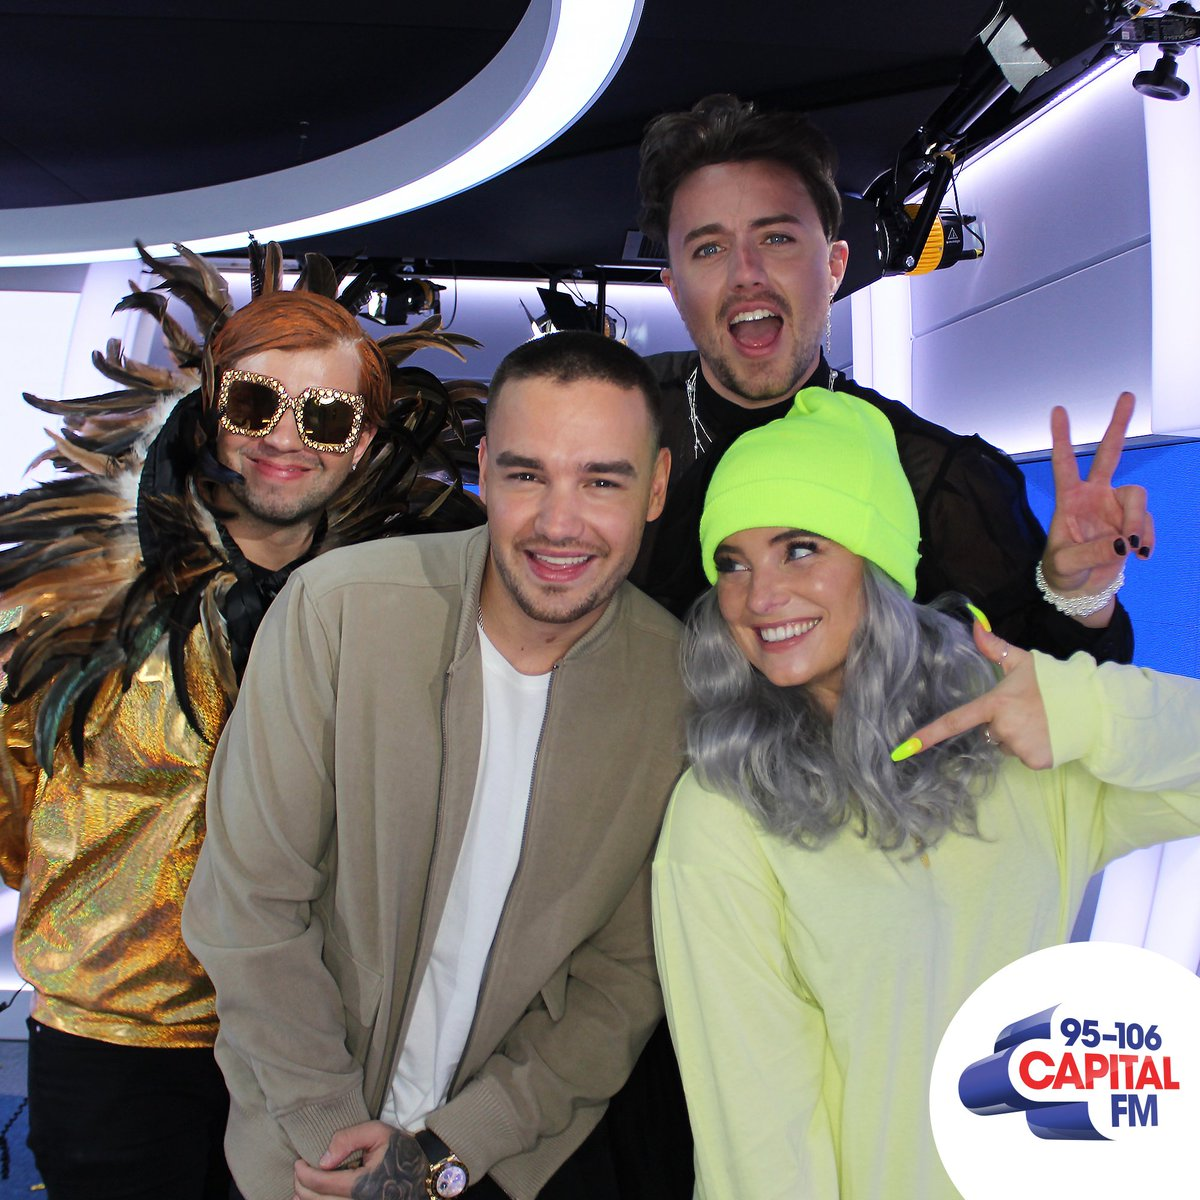 It's always a laugh when @LiamPayne joins Capital Breakfast with @romankemp 🥰